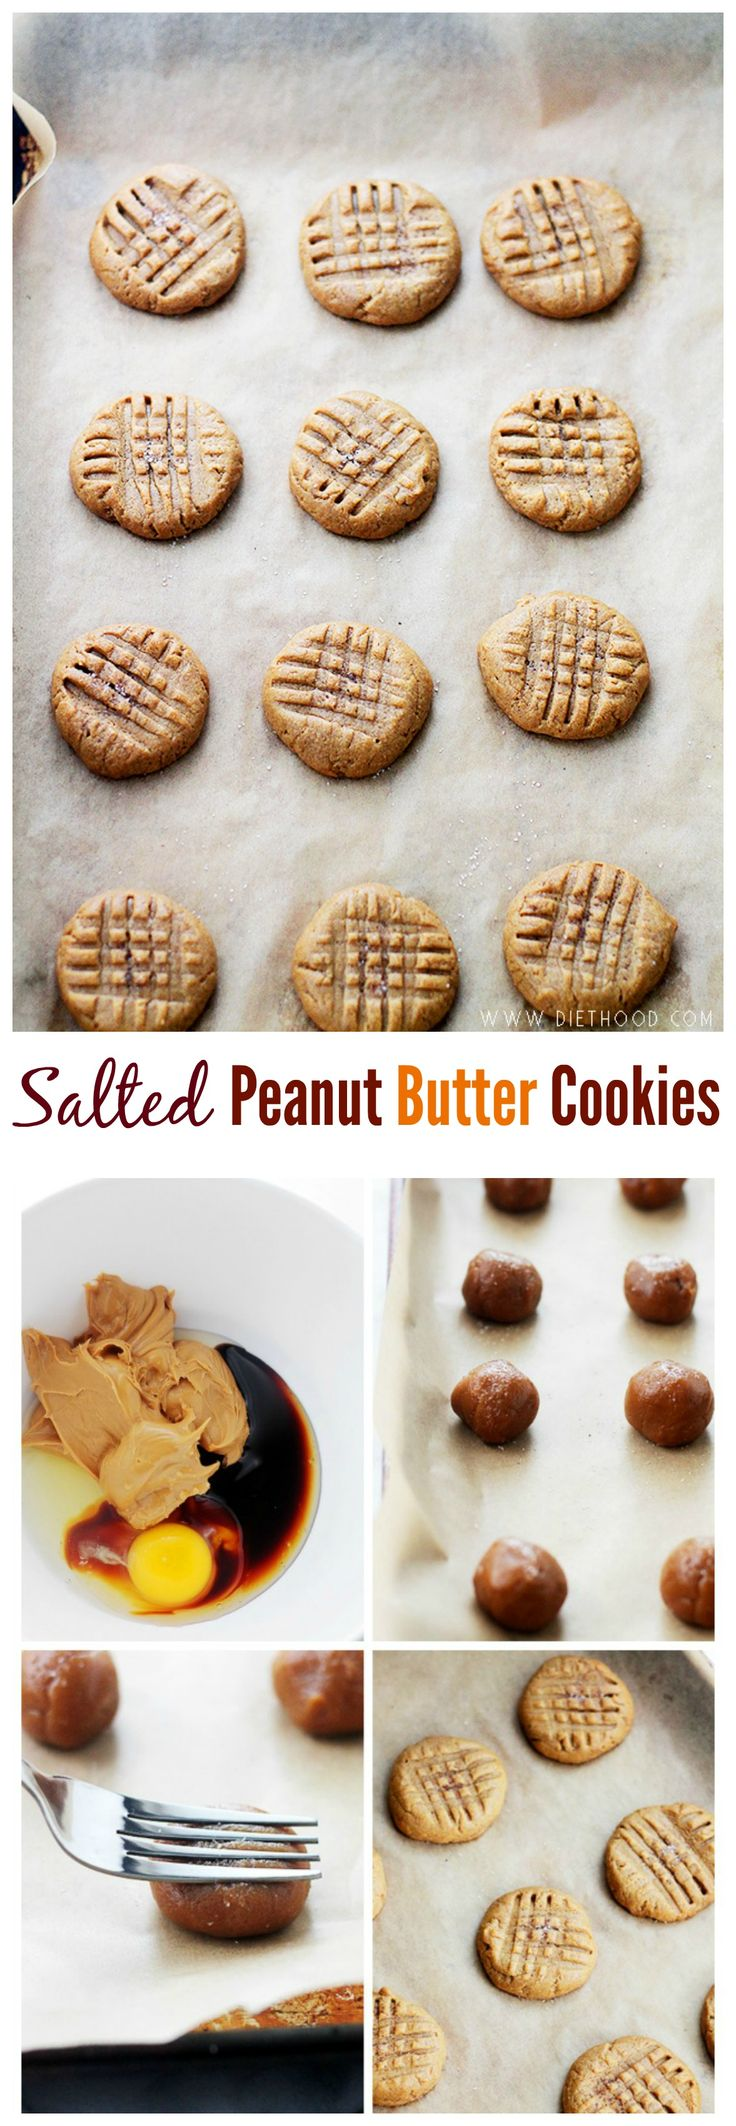 Made with just FOUR ingredients, these Peanut Butter Cookies are fudgy, sweet, salty and gluten free!